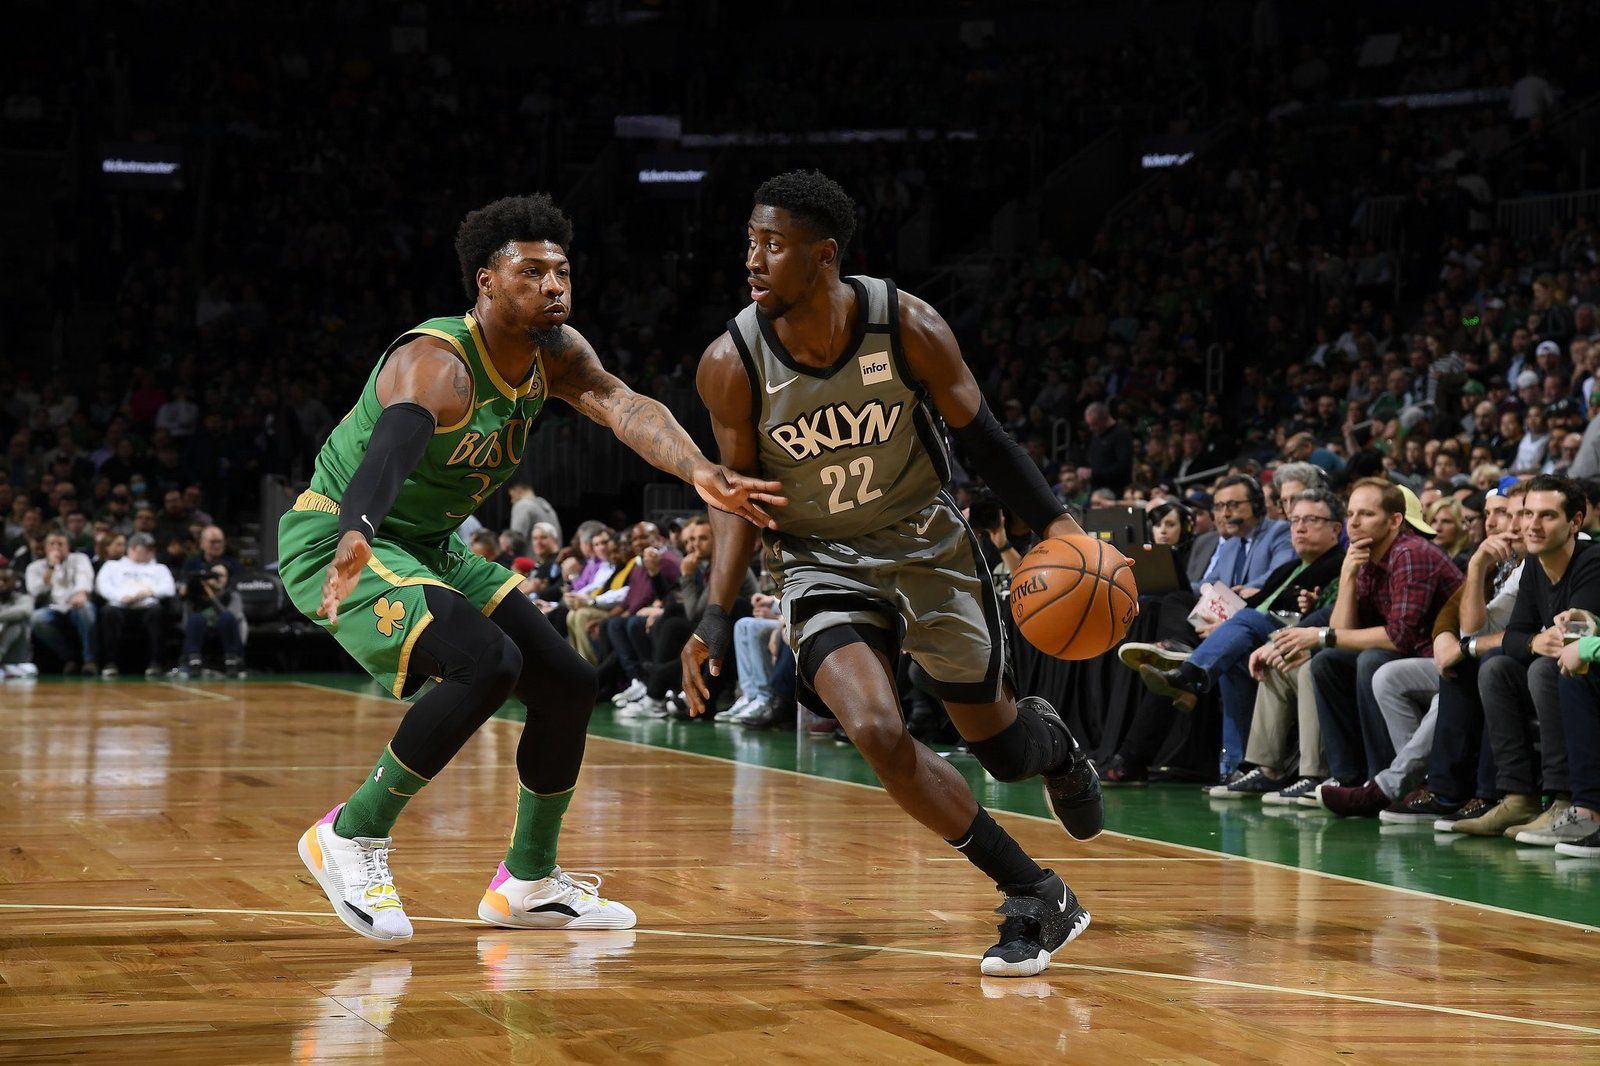 Caris LeVert marche sur Boston en inscrivant 51 points, Denver surpris par les Warriors, les Lakers dominent Philadelphie